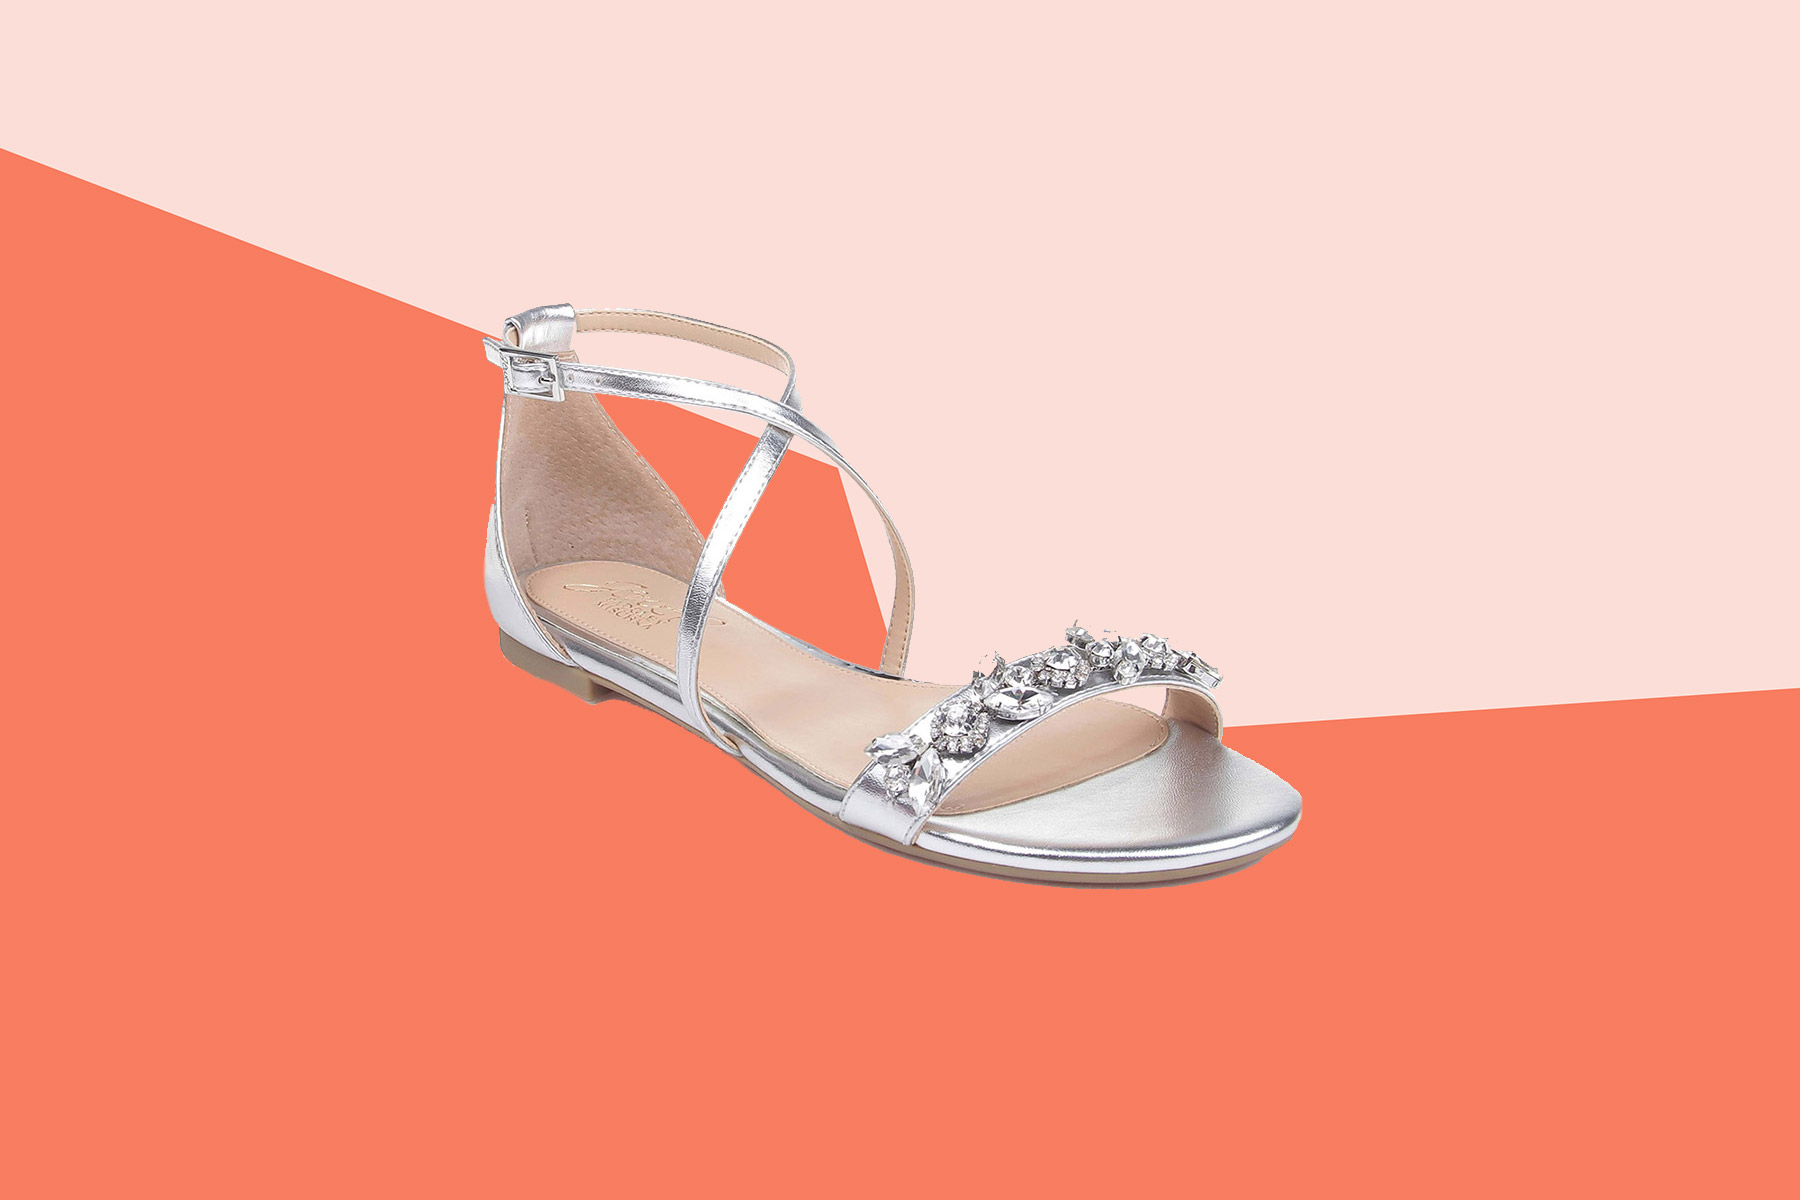 620cce300ef0 9 Gorgeous Wedding Flats Every Bride Will Love—and Never Want to Take Off